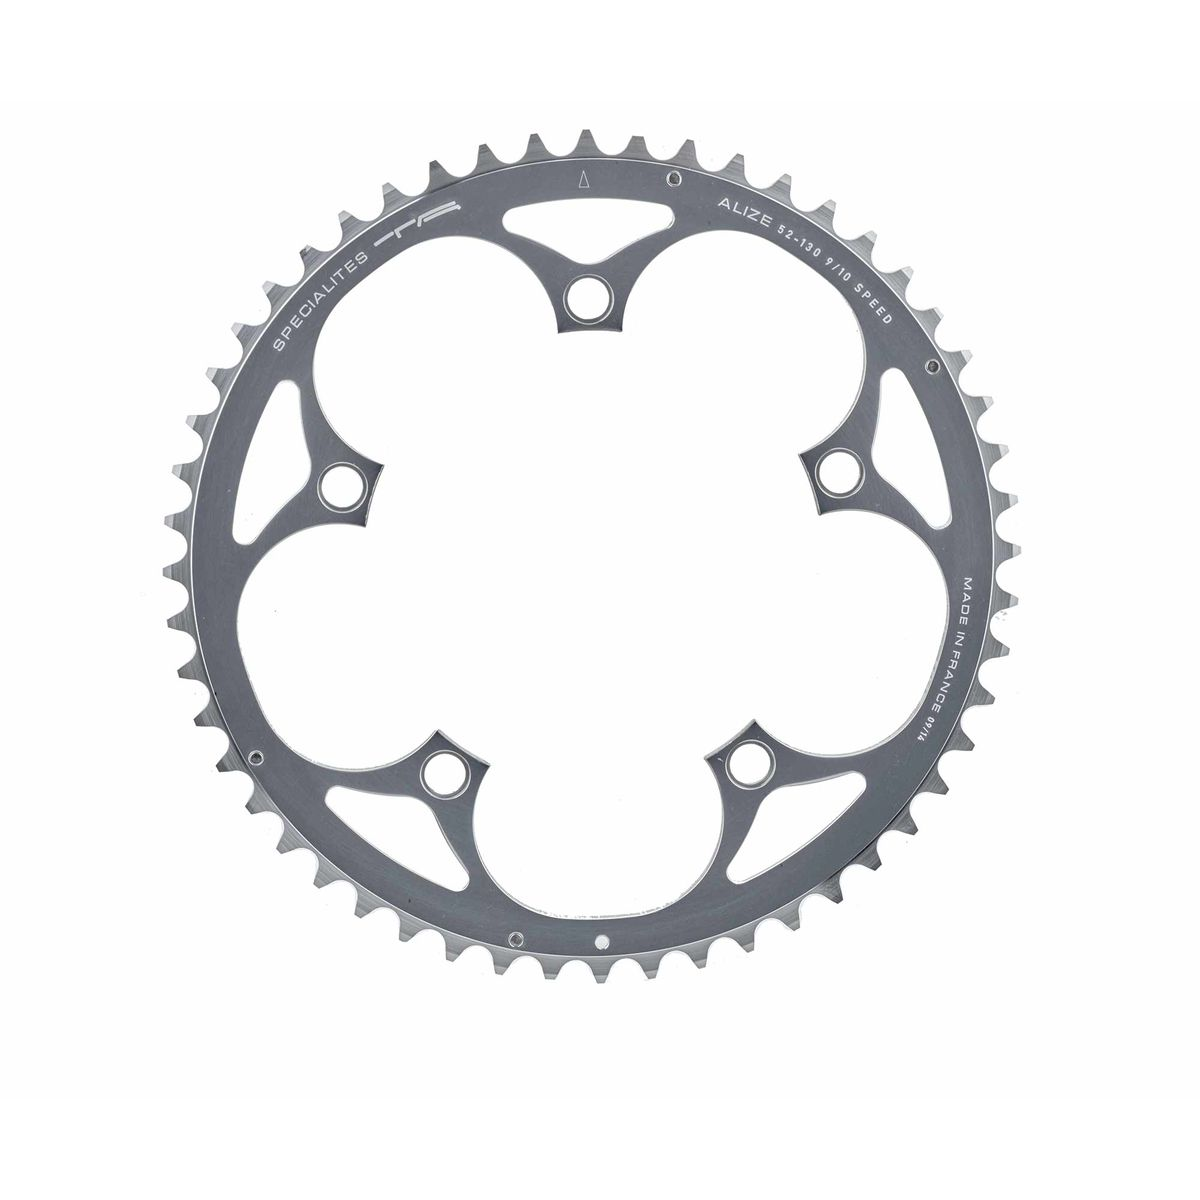 TA Alizé 9-/10-speed 52-tooth chainring | Klinger